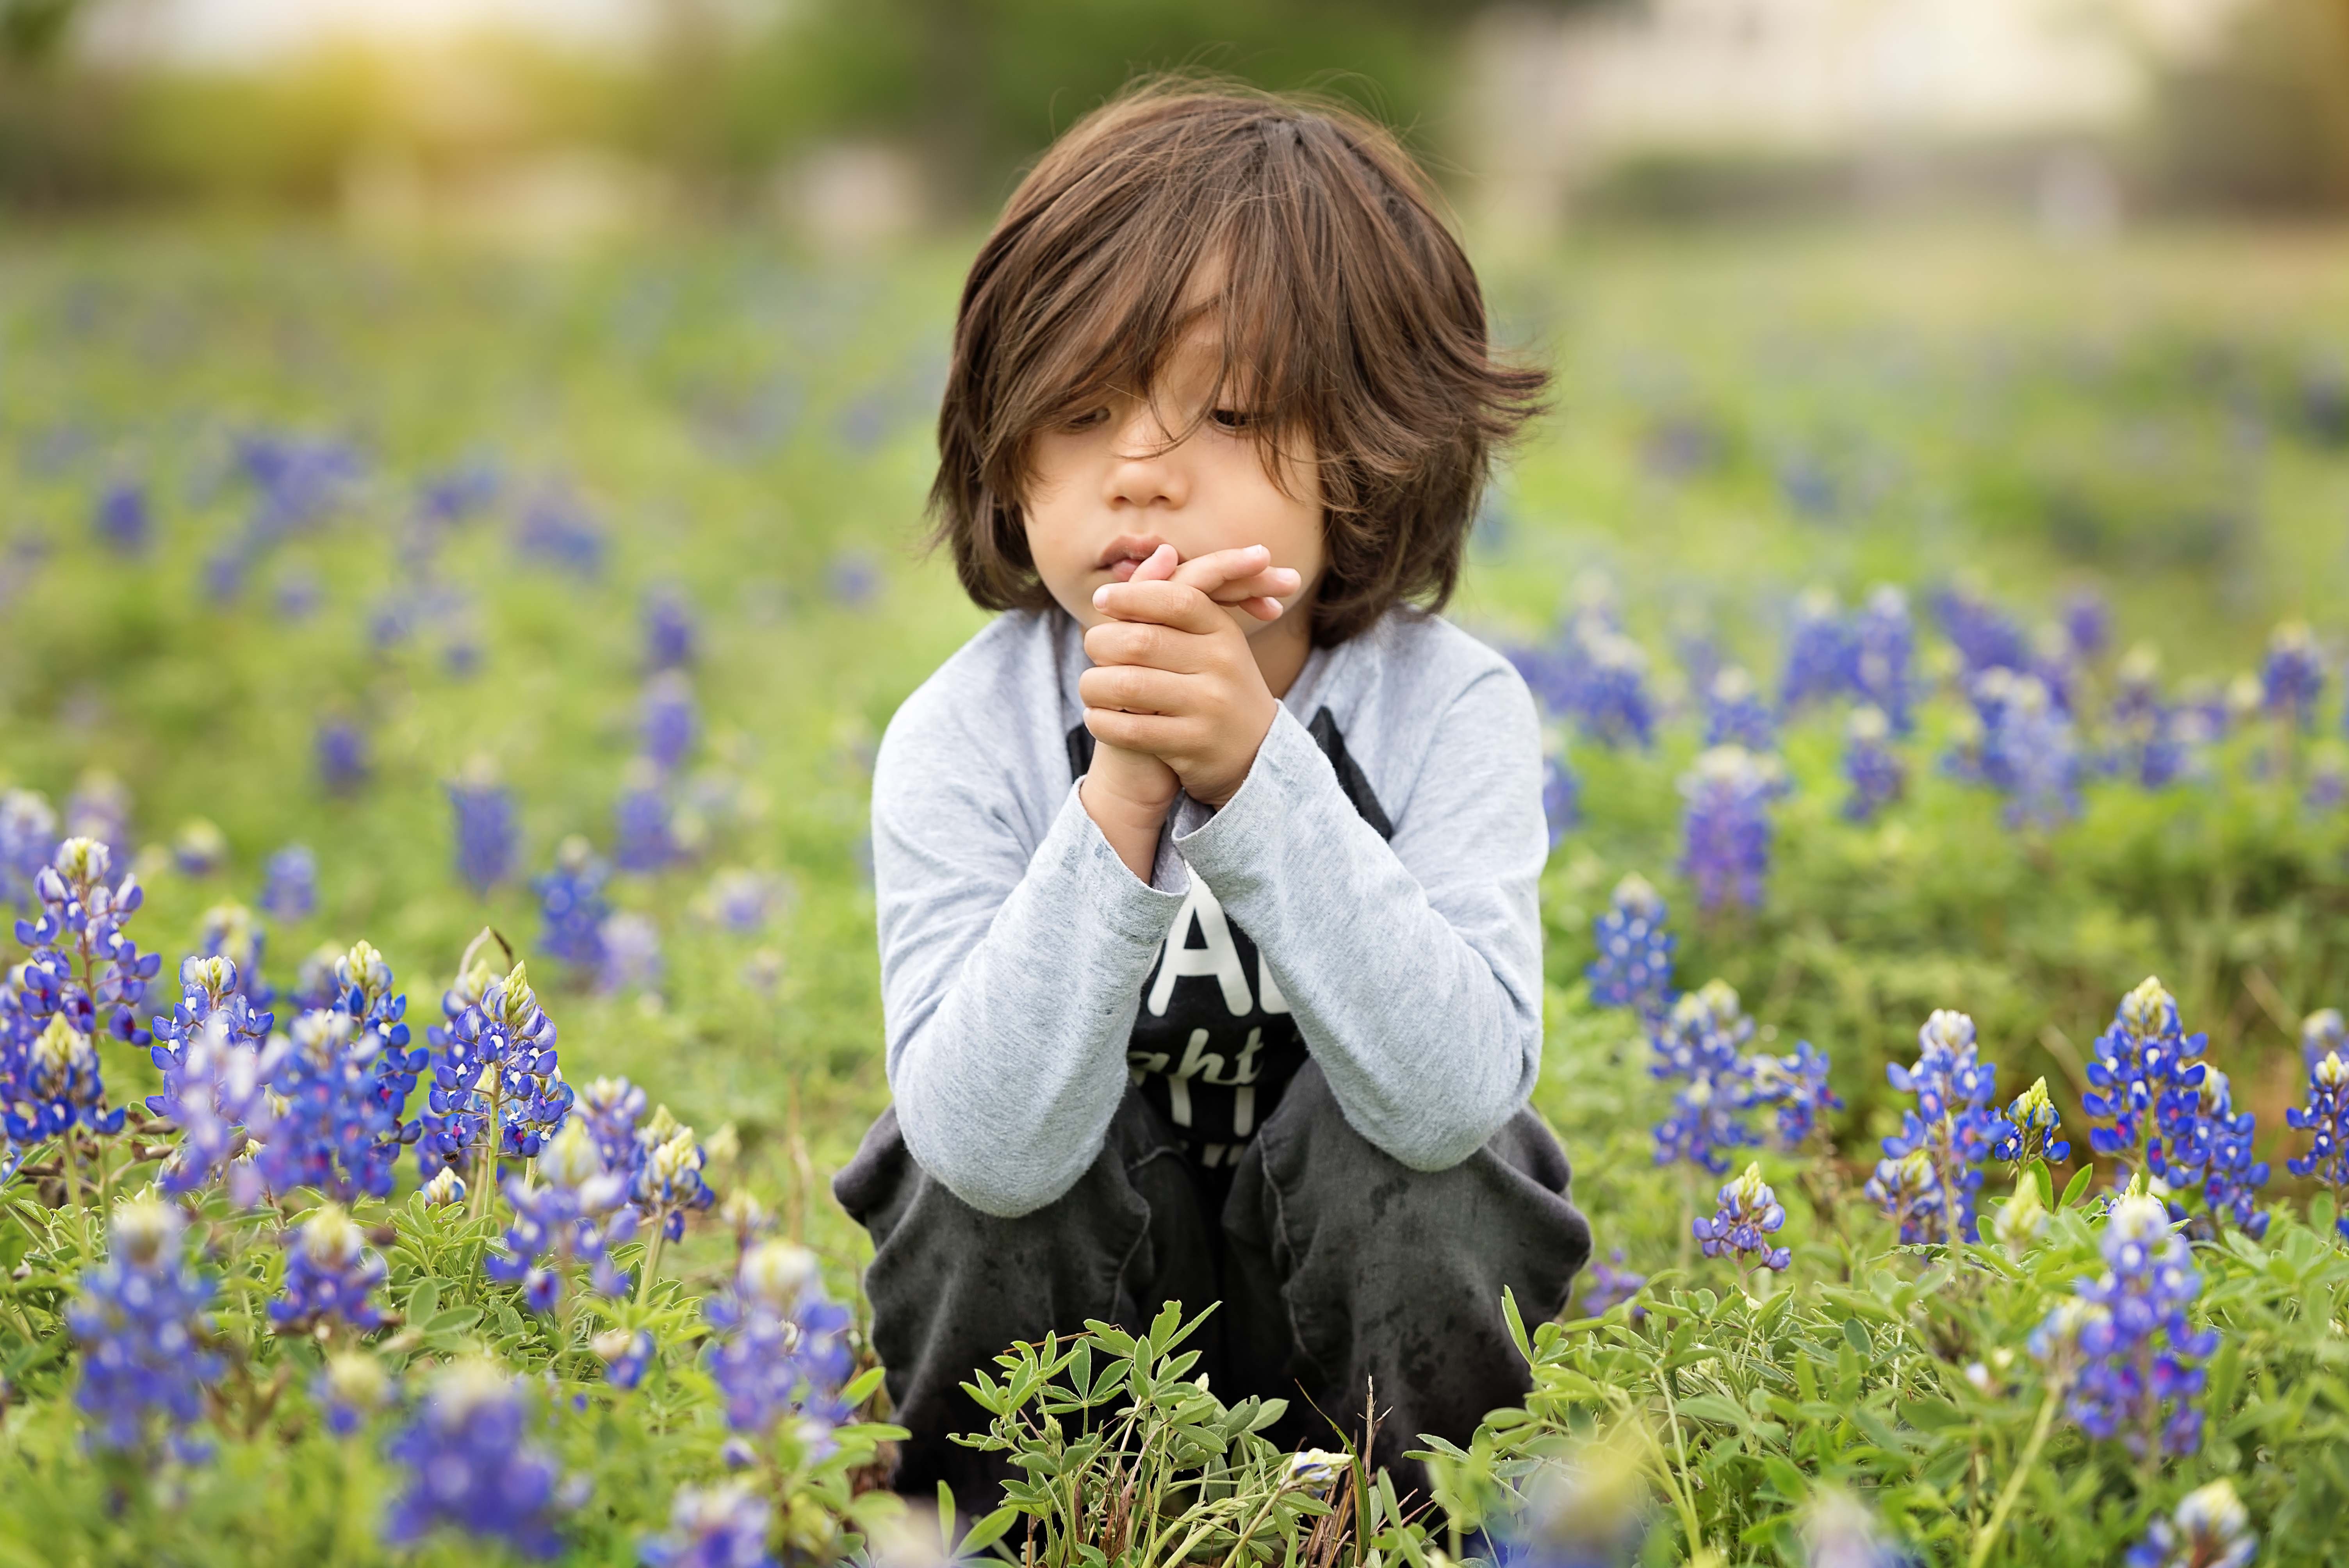 10 Tips And Tricks To Taking Amazing Bluebonnet Portraits